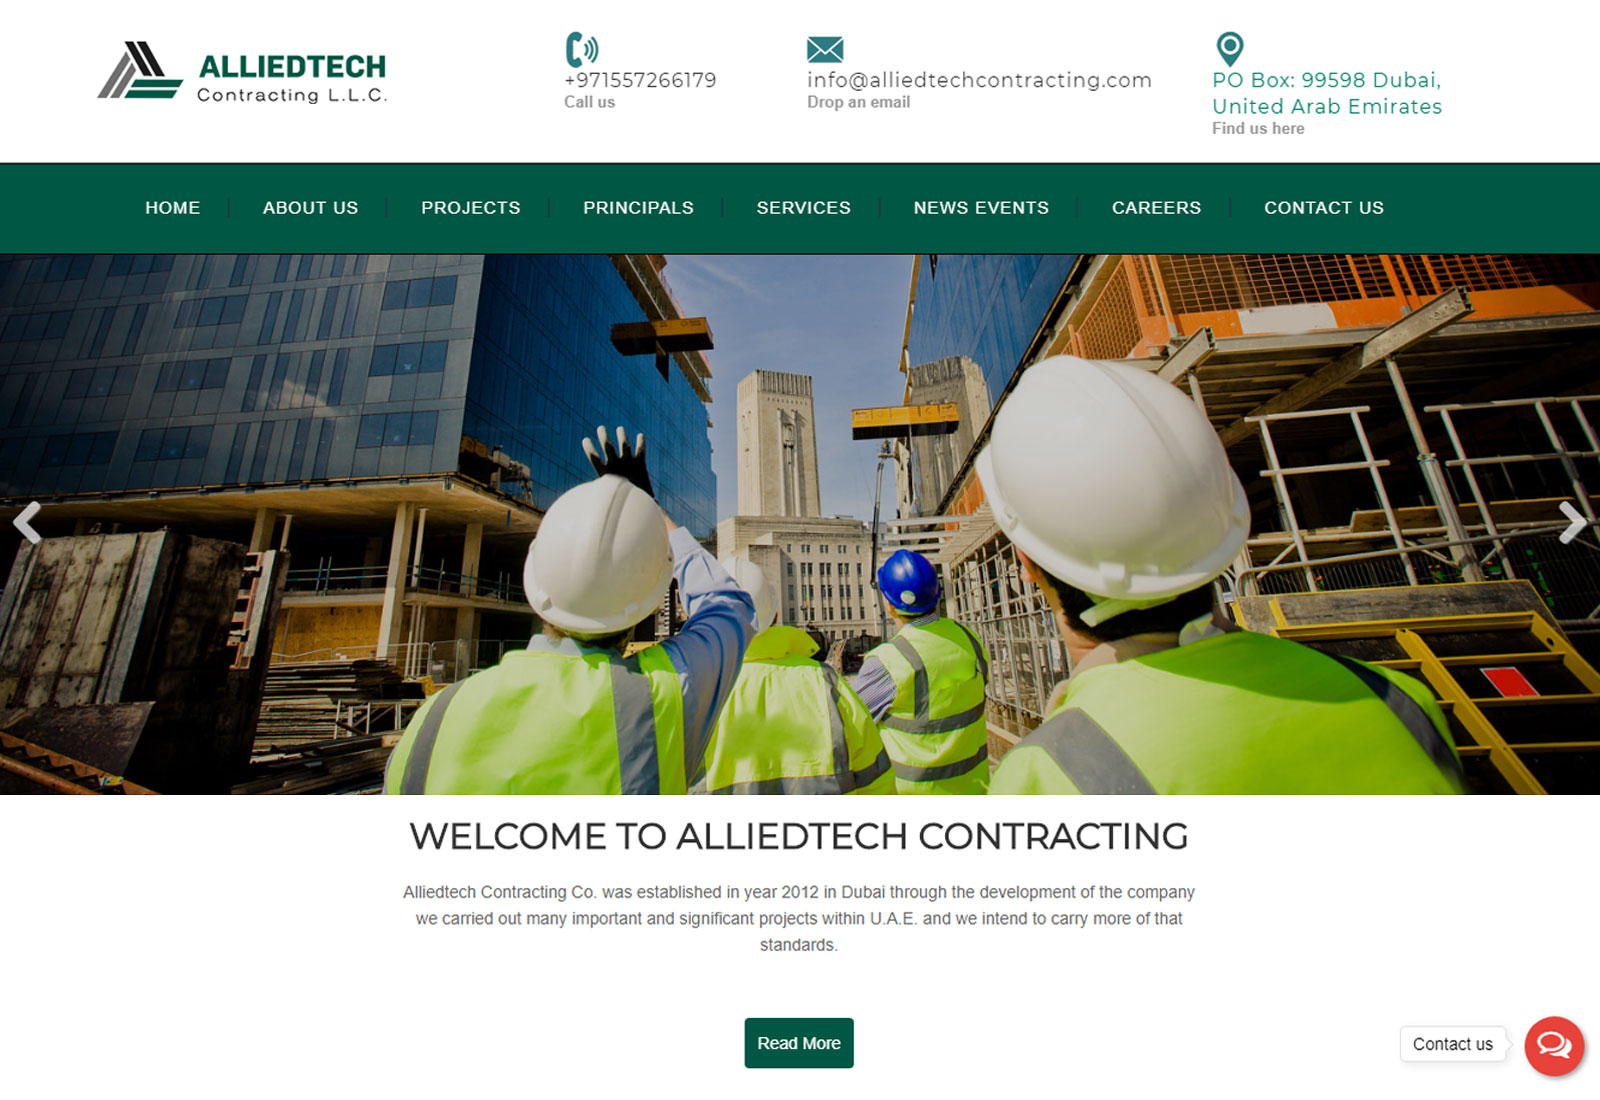 Alliedtech Contracting